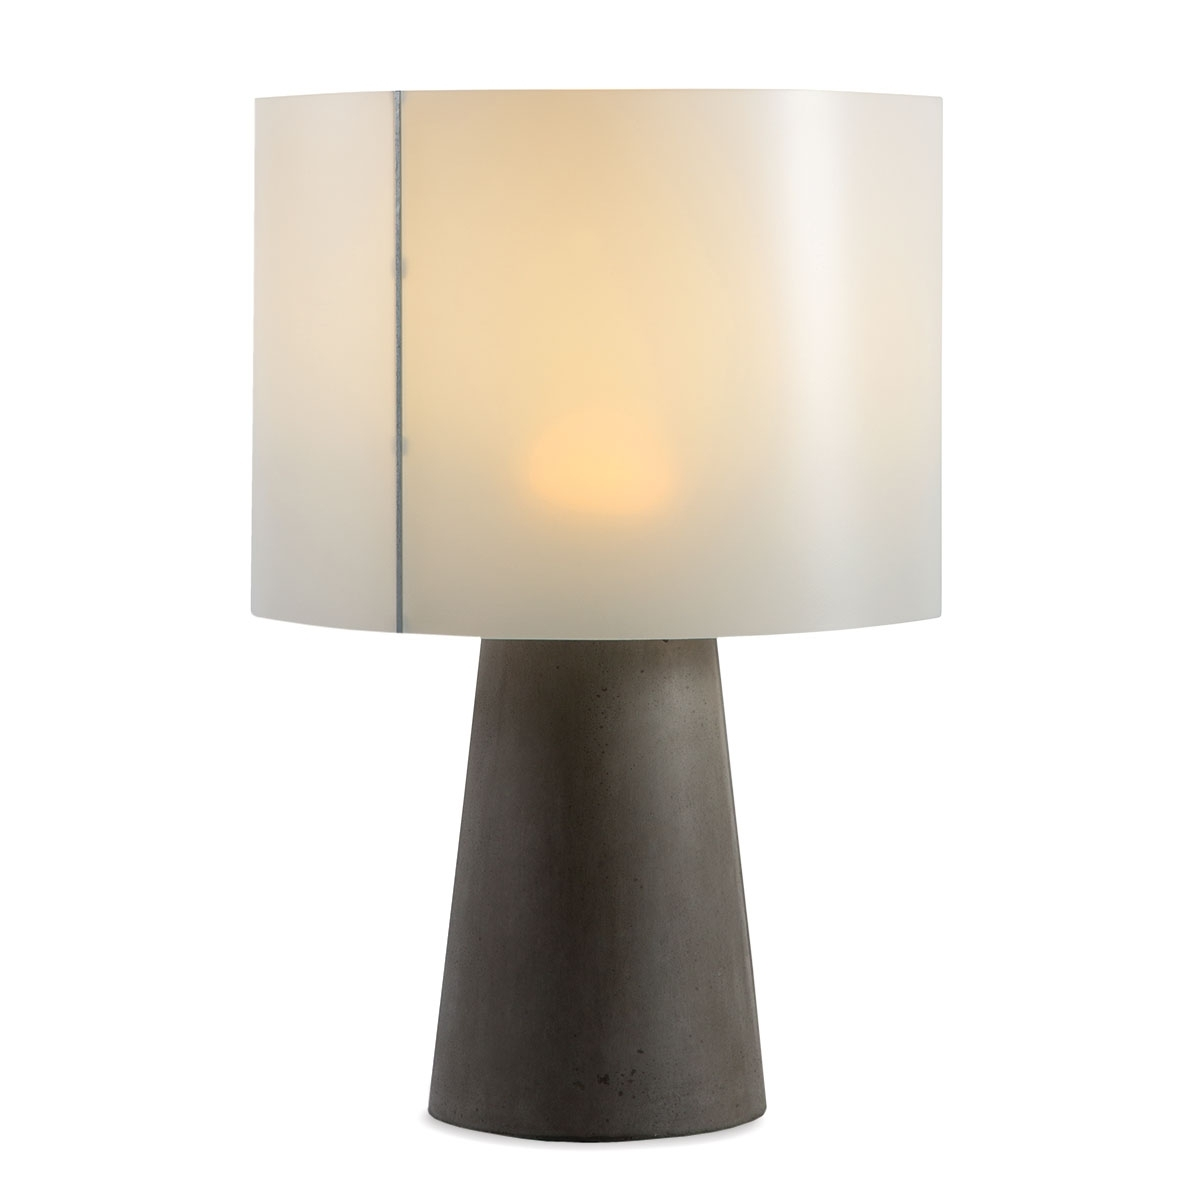 Newest Cordless Living Room Table Lamps Inside Inda Outdoor Cordless Concrete Table Lamp Dark Gray (Gallery 3 of 20)